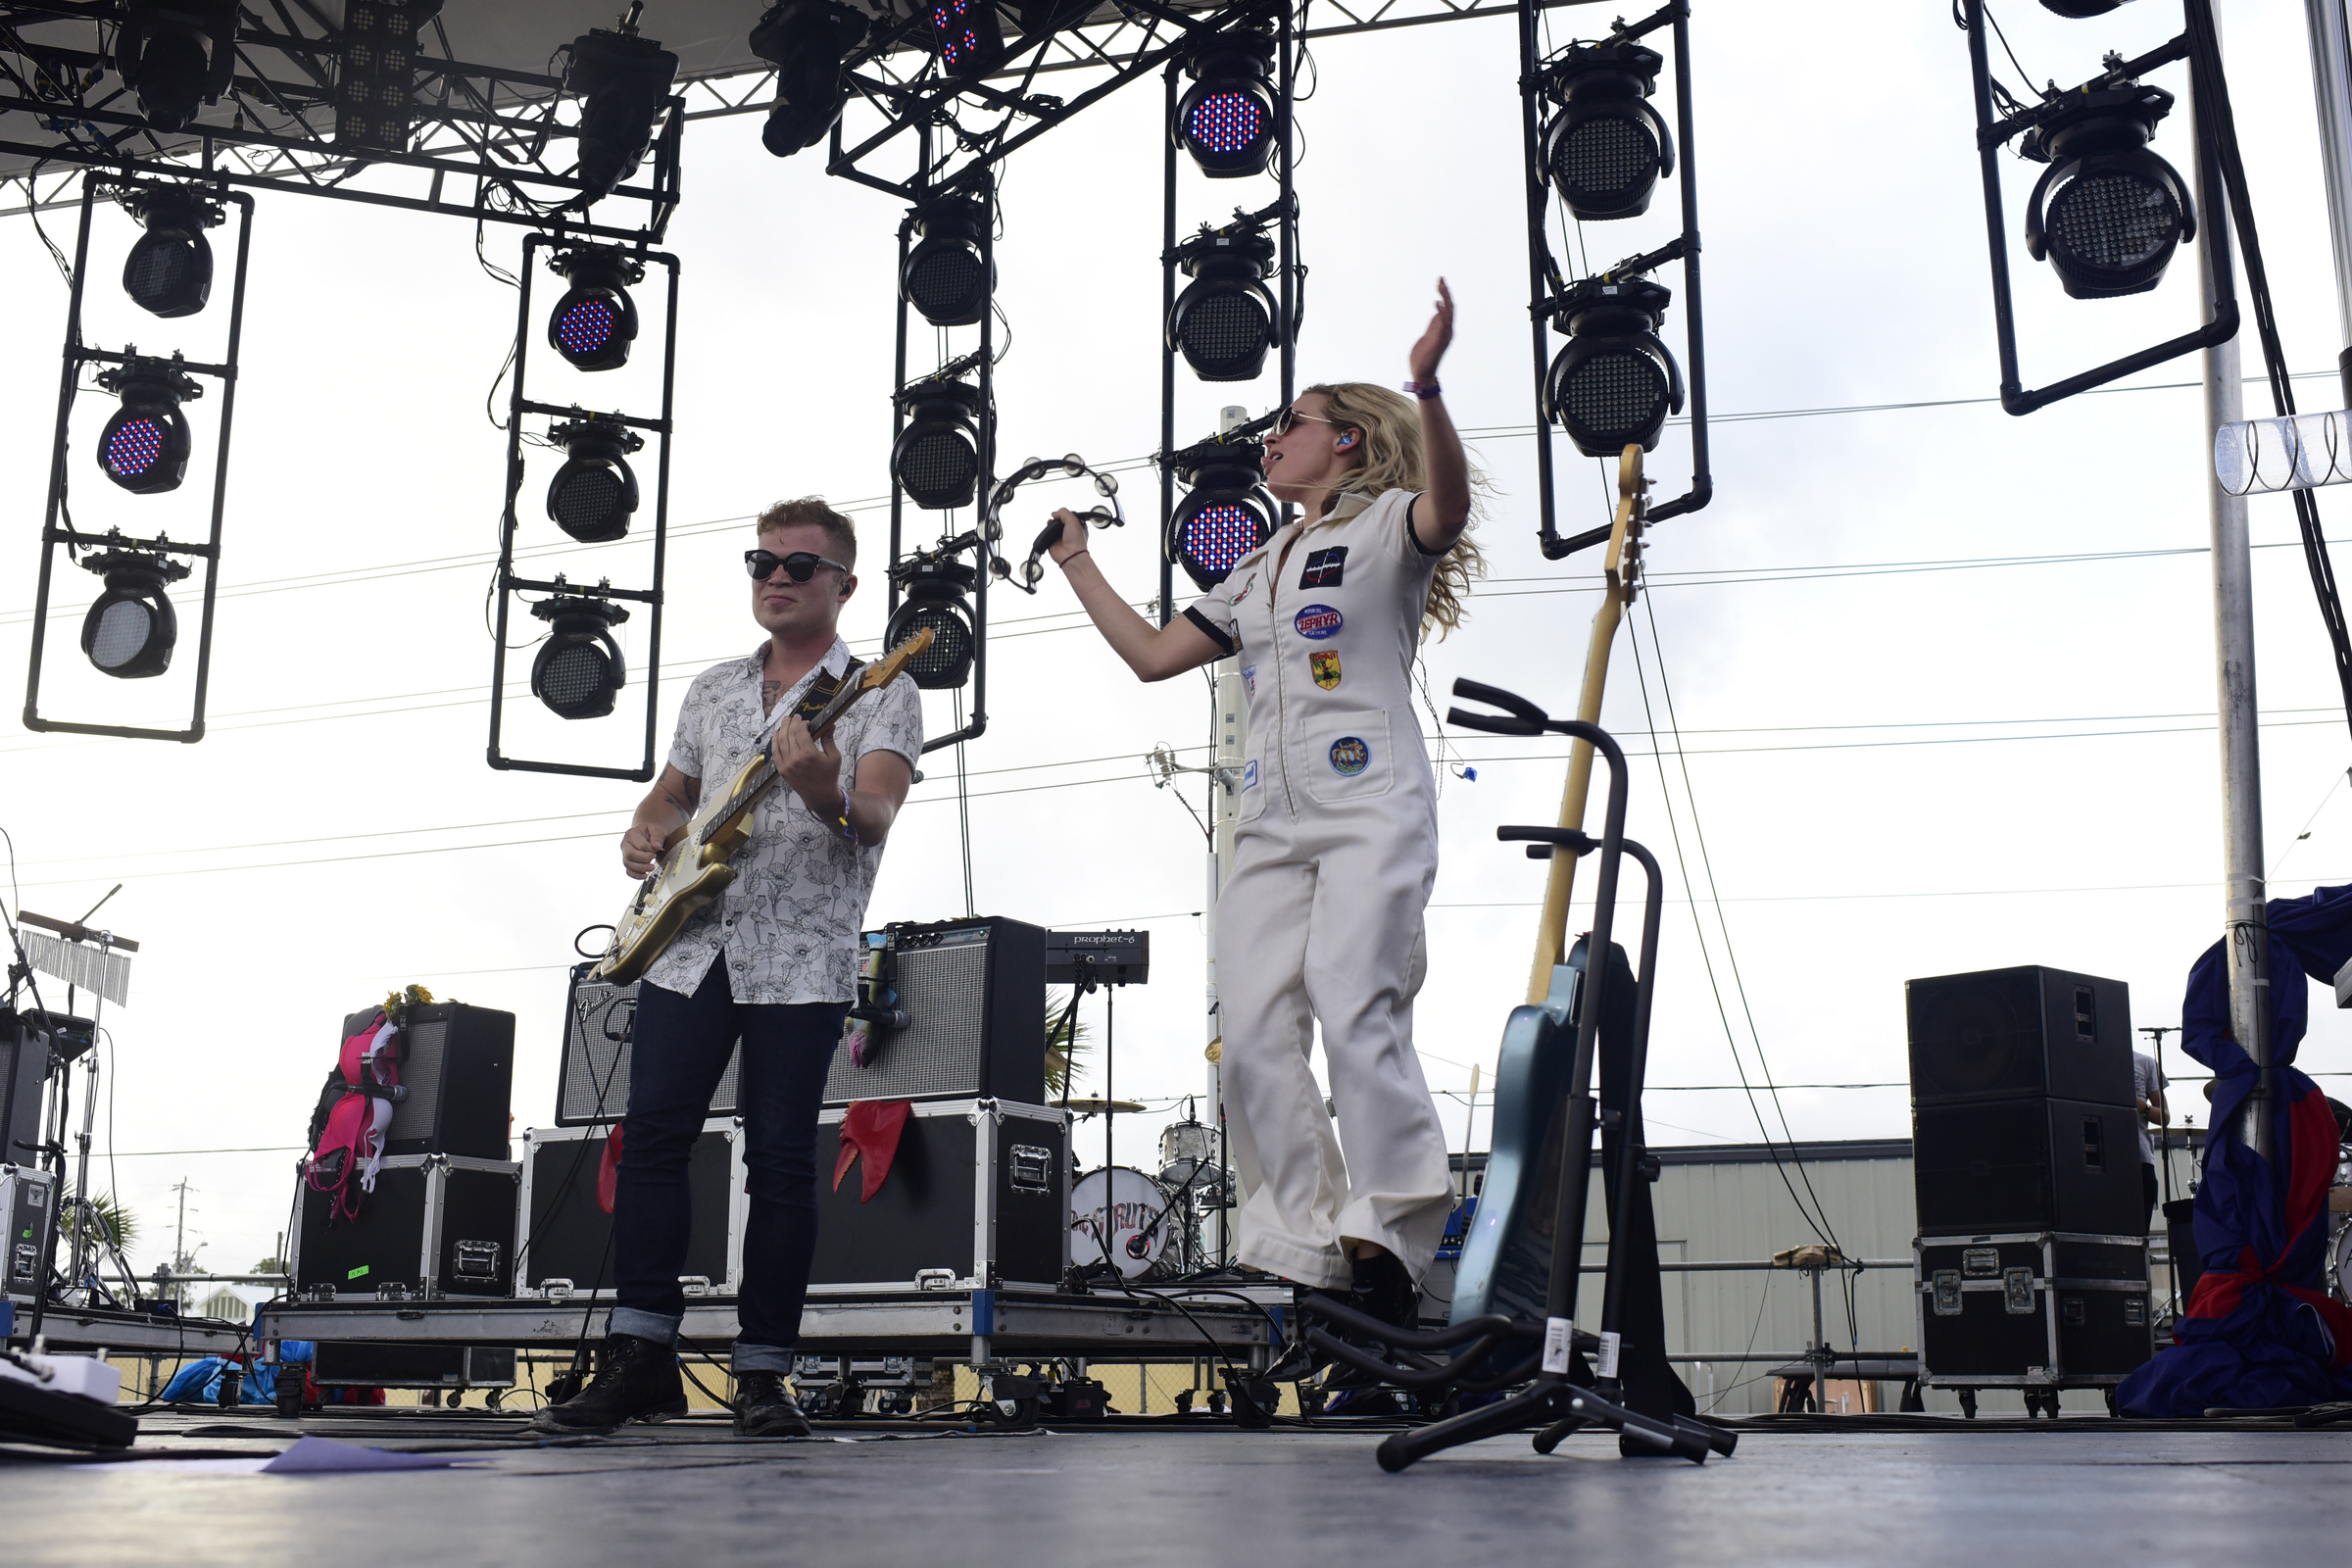 PHASES at Hangout Music Festival. Photo: Courtesy of Hangout Music Festival